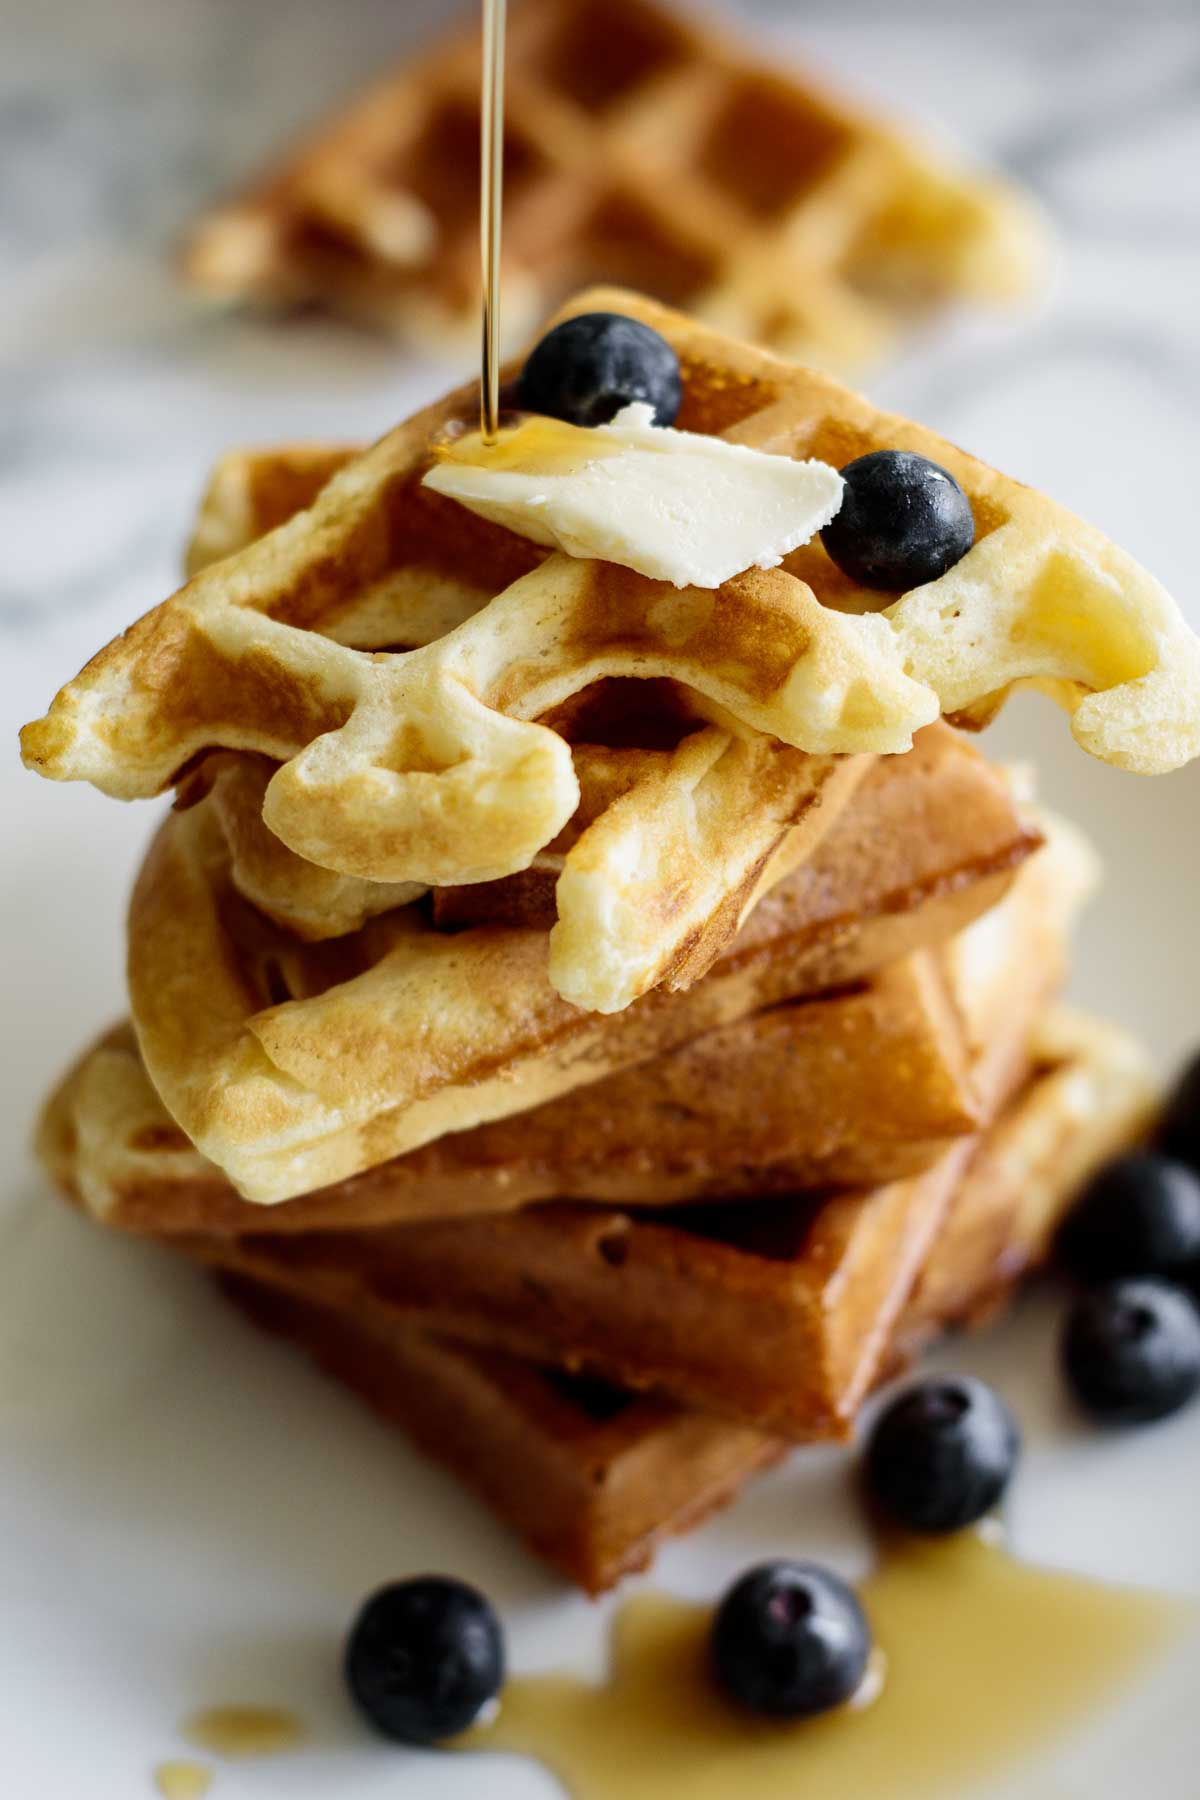 Waffles with berries, maple syrup and butter.